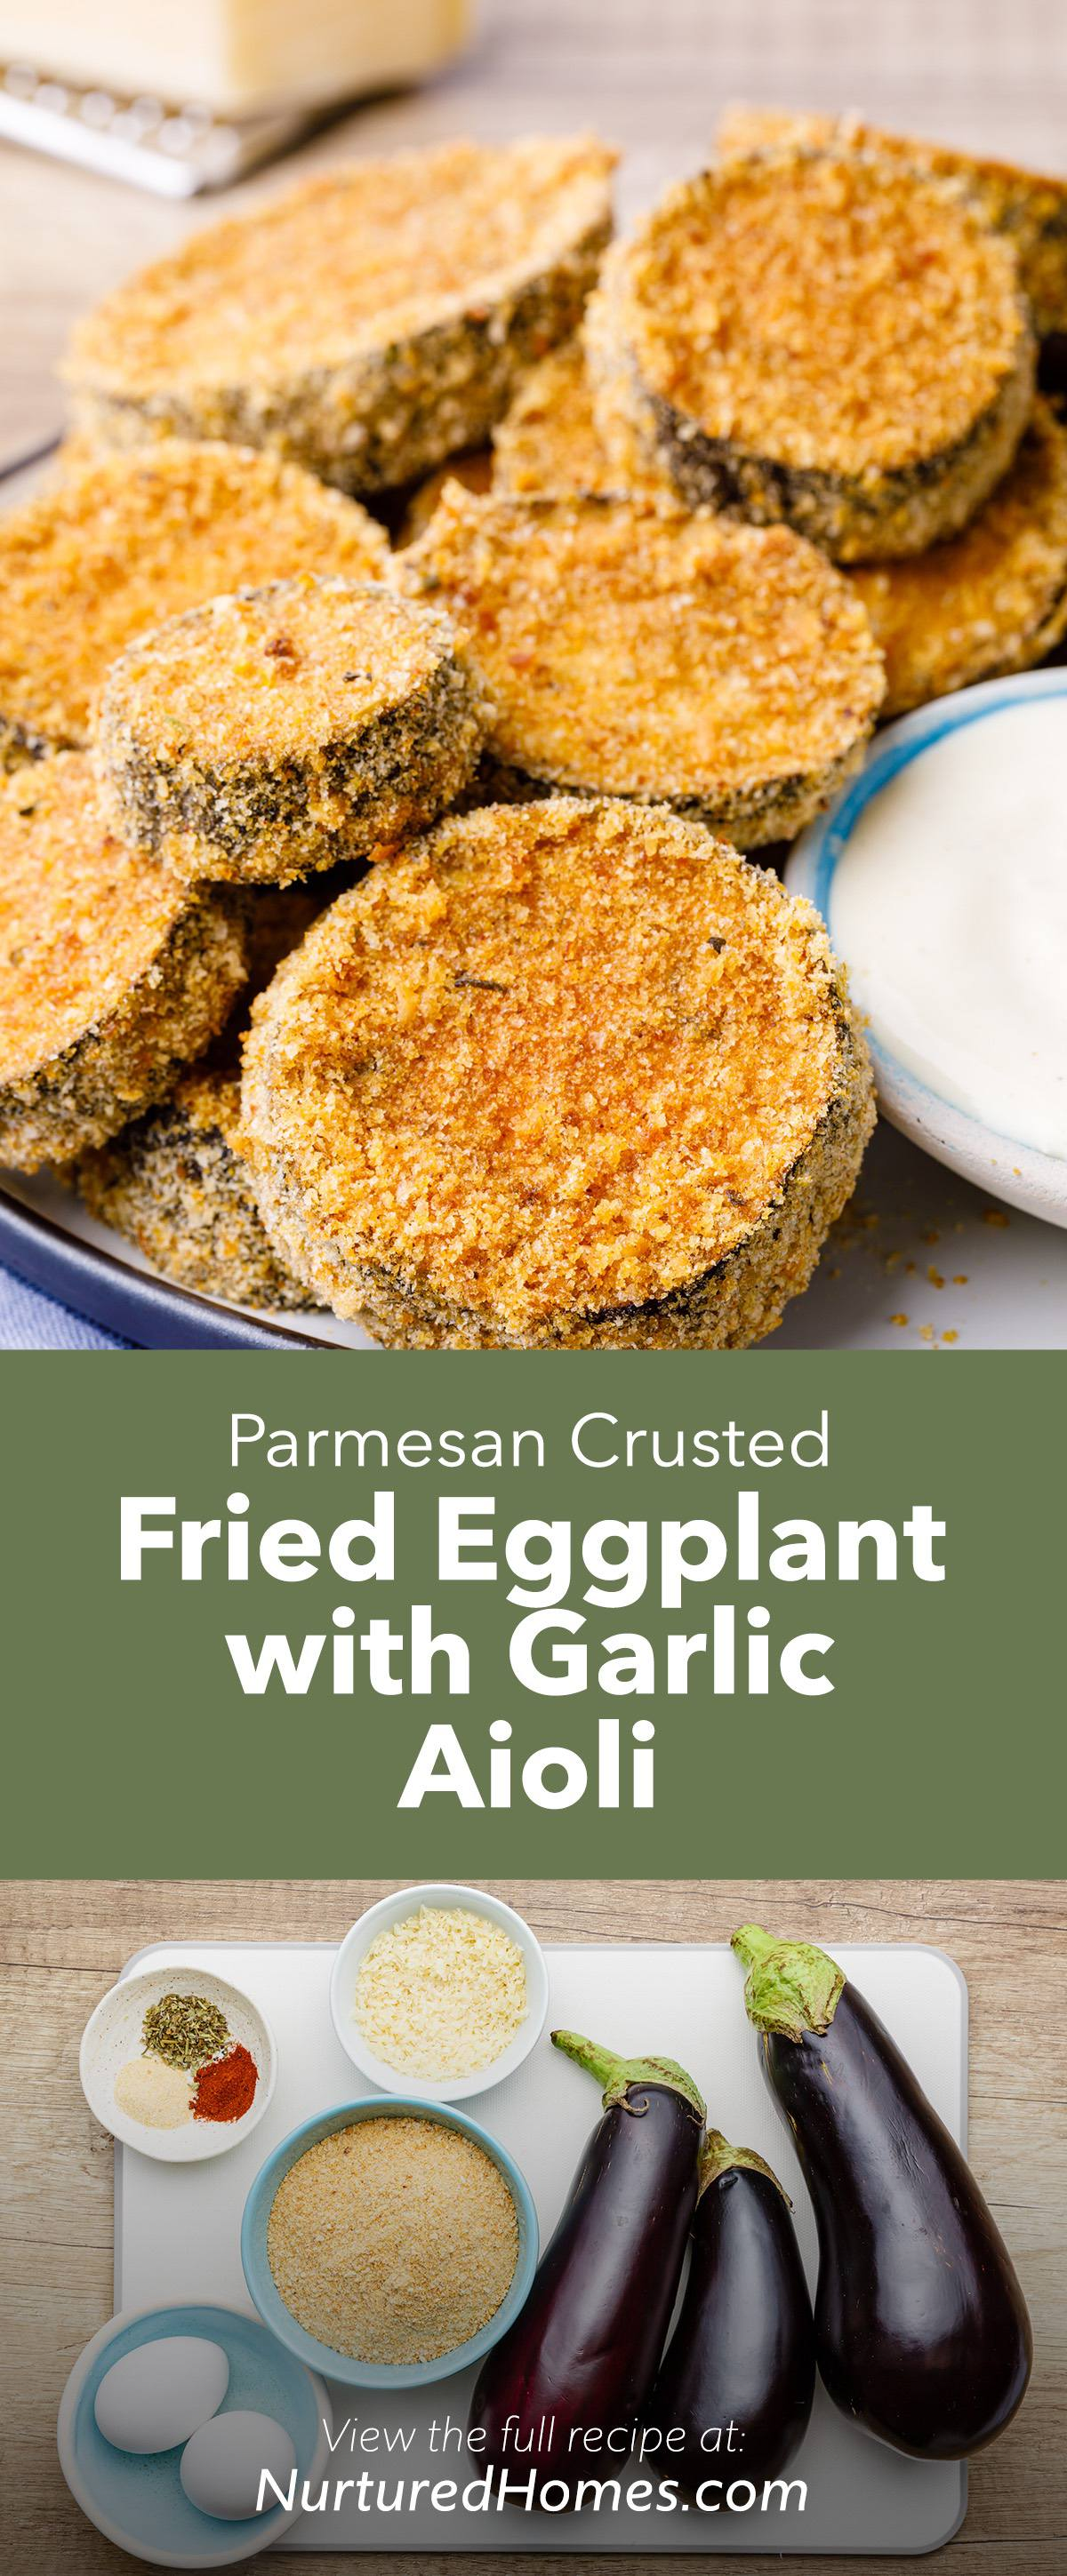 Parmesan Crusted Fried Eggplant Slices with Garlic Aioli Dipping Sauce